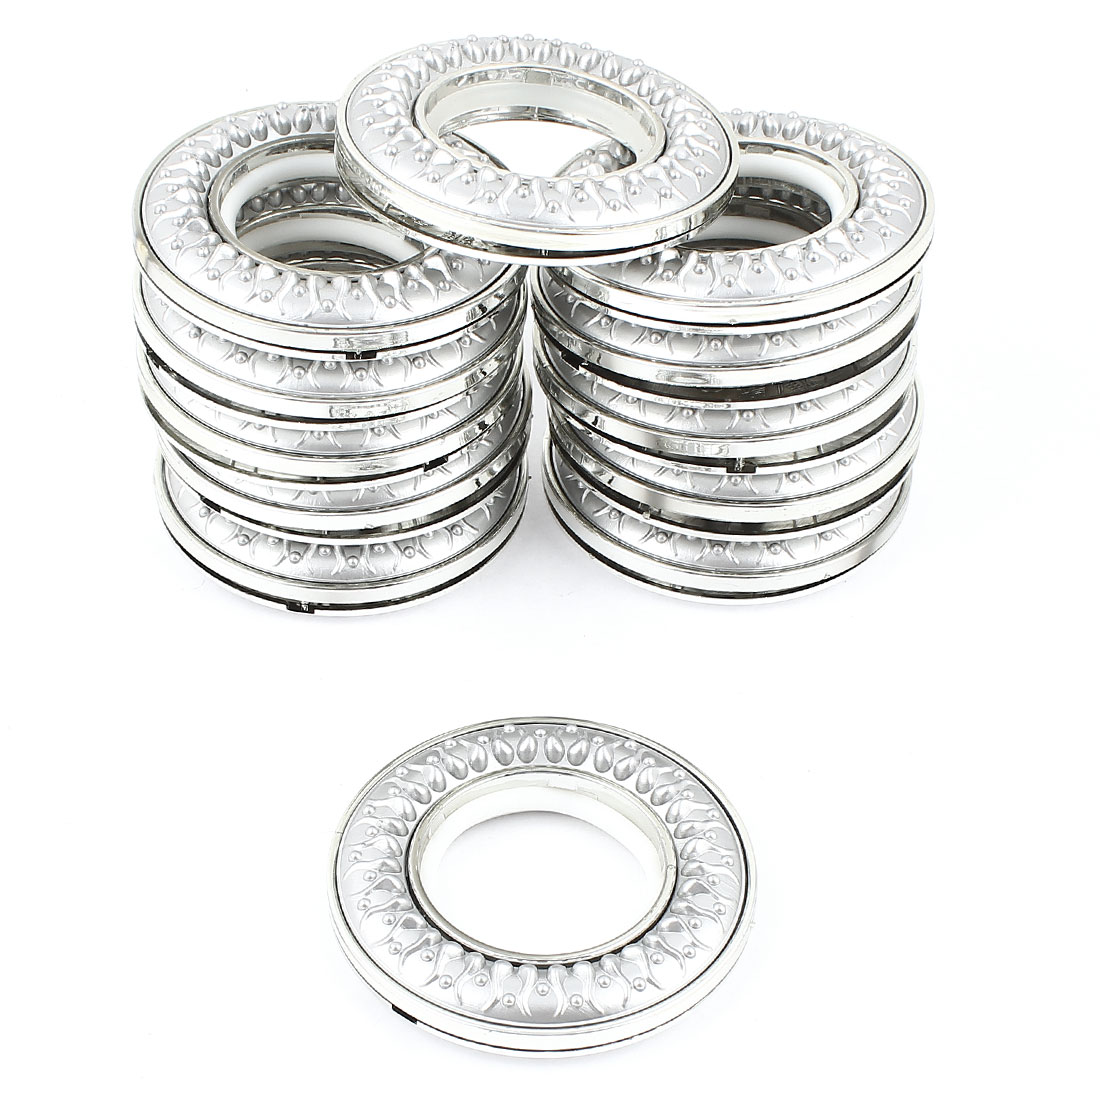 12pcs Silver Tone Round Shape Plastic Ring for Eyelet Curtain Drapery inner Dia. 40mm